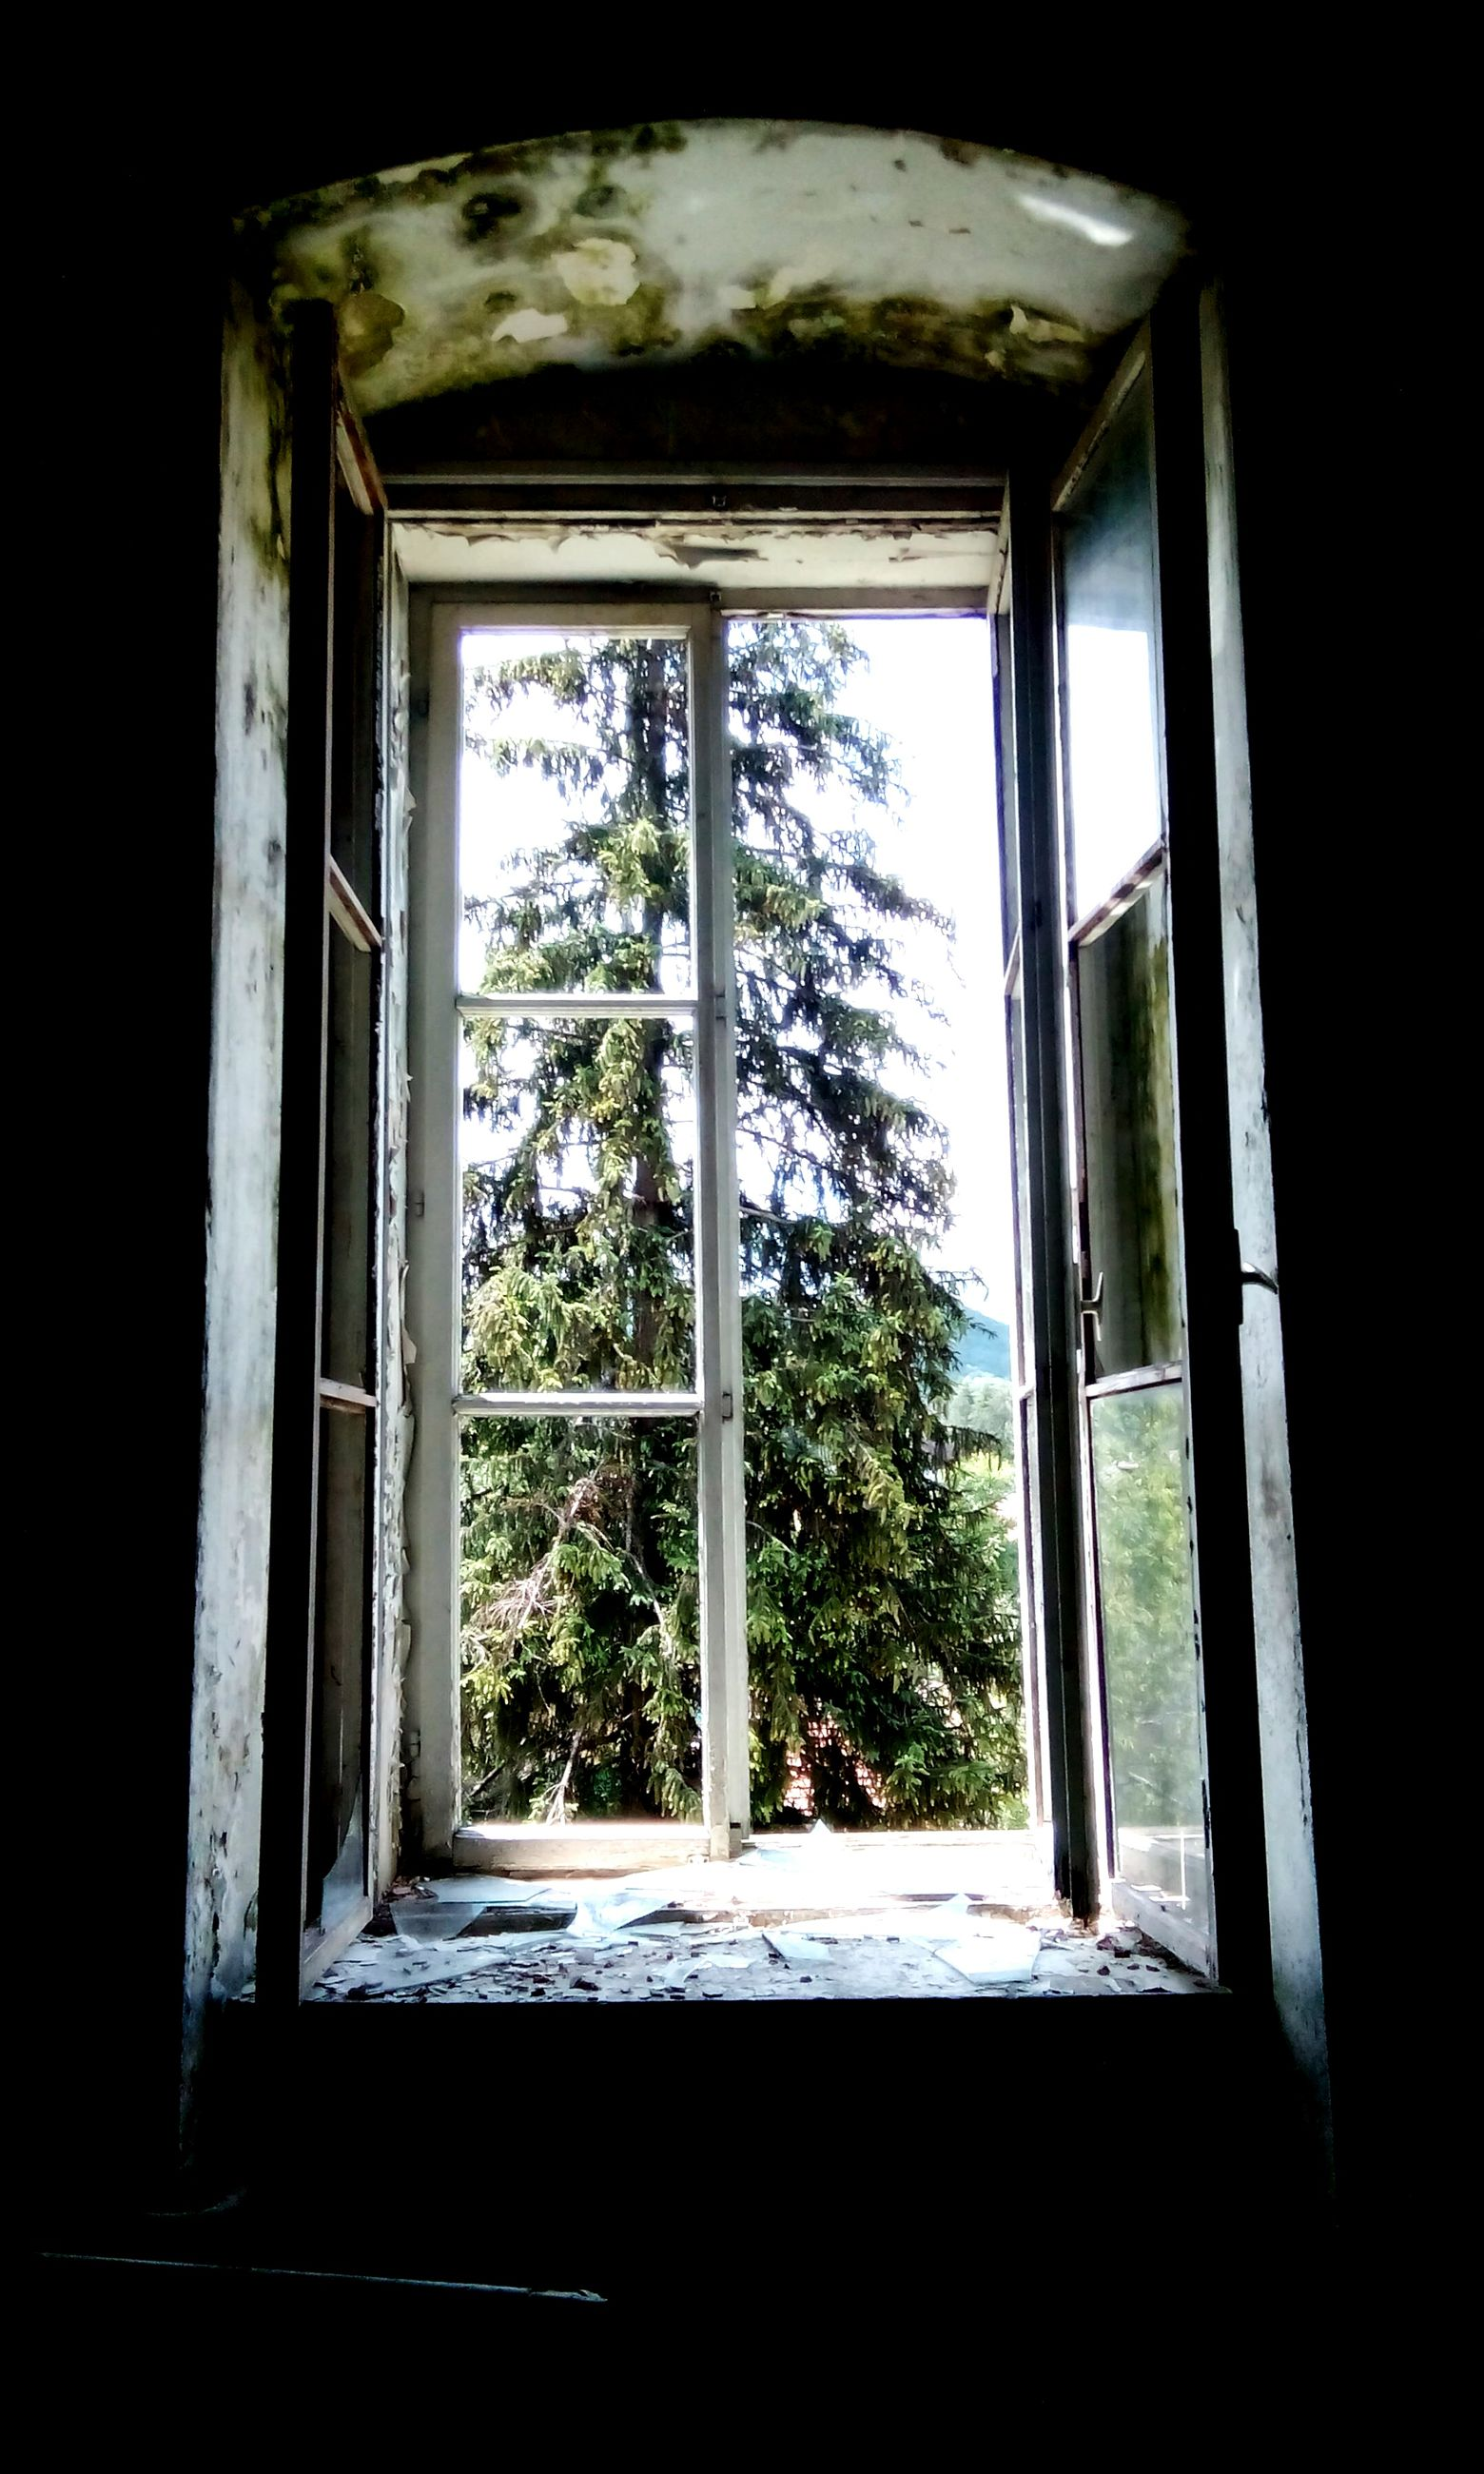 window, indoors, glass - material, transparent, built structure, architecture, house, window frame, home interior, tree, day, closed, growth, no people, sunlight, dark, curtain, low angle view, open, plant